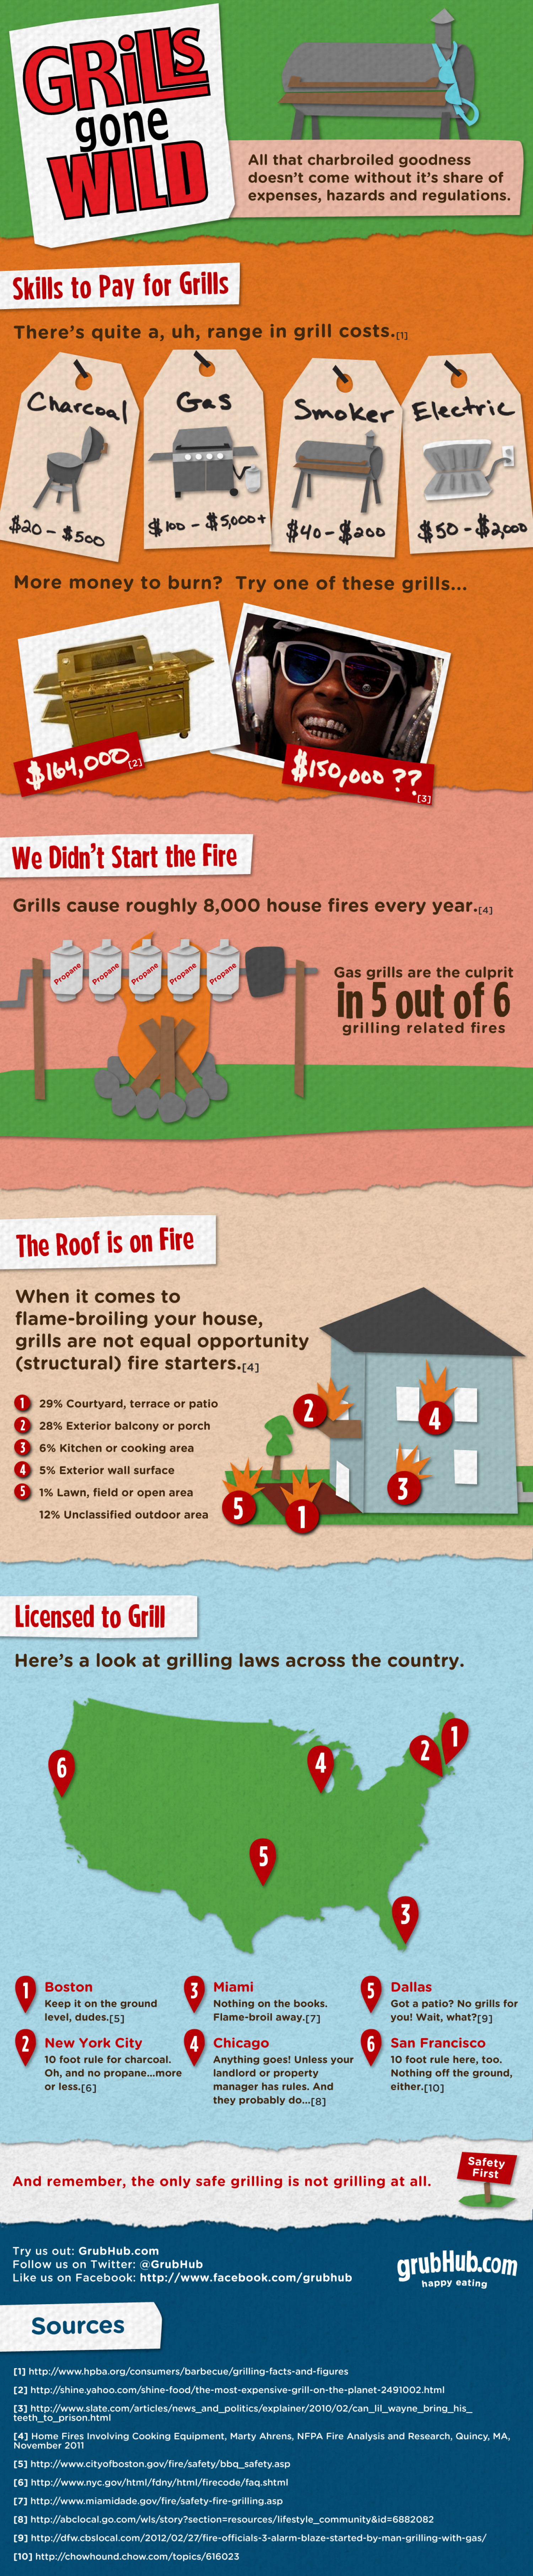 Grills Gone Wild! Infographic